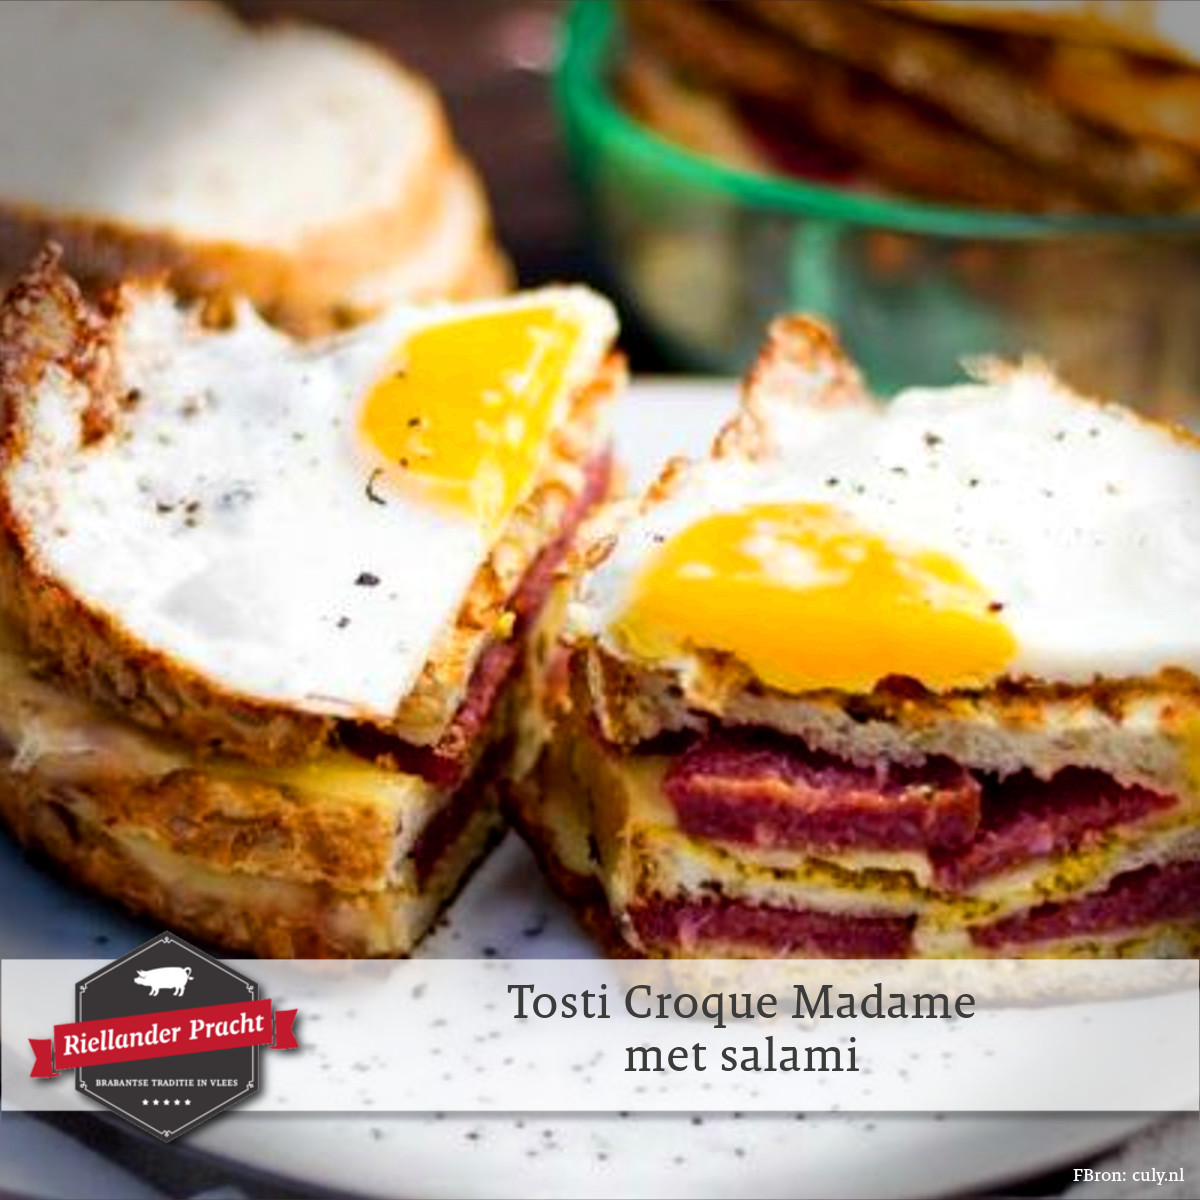 Lunch recept: tosti croque madame met salami